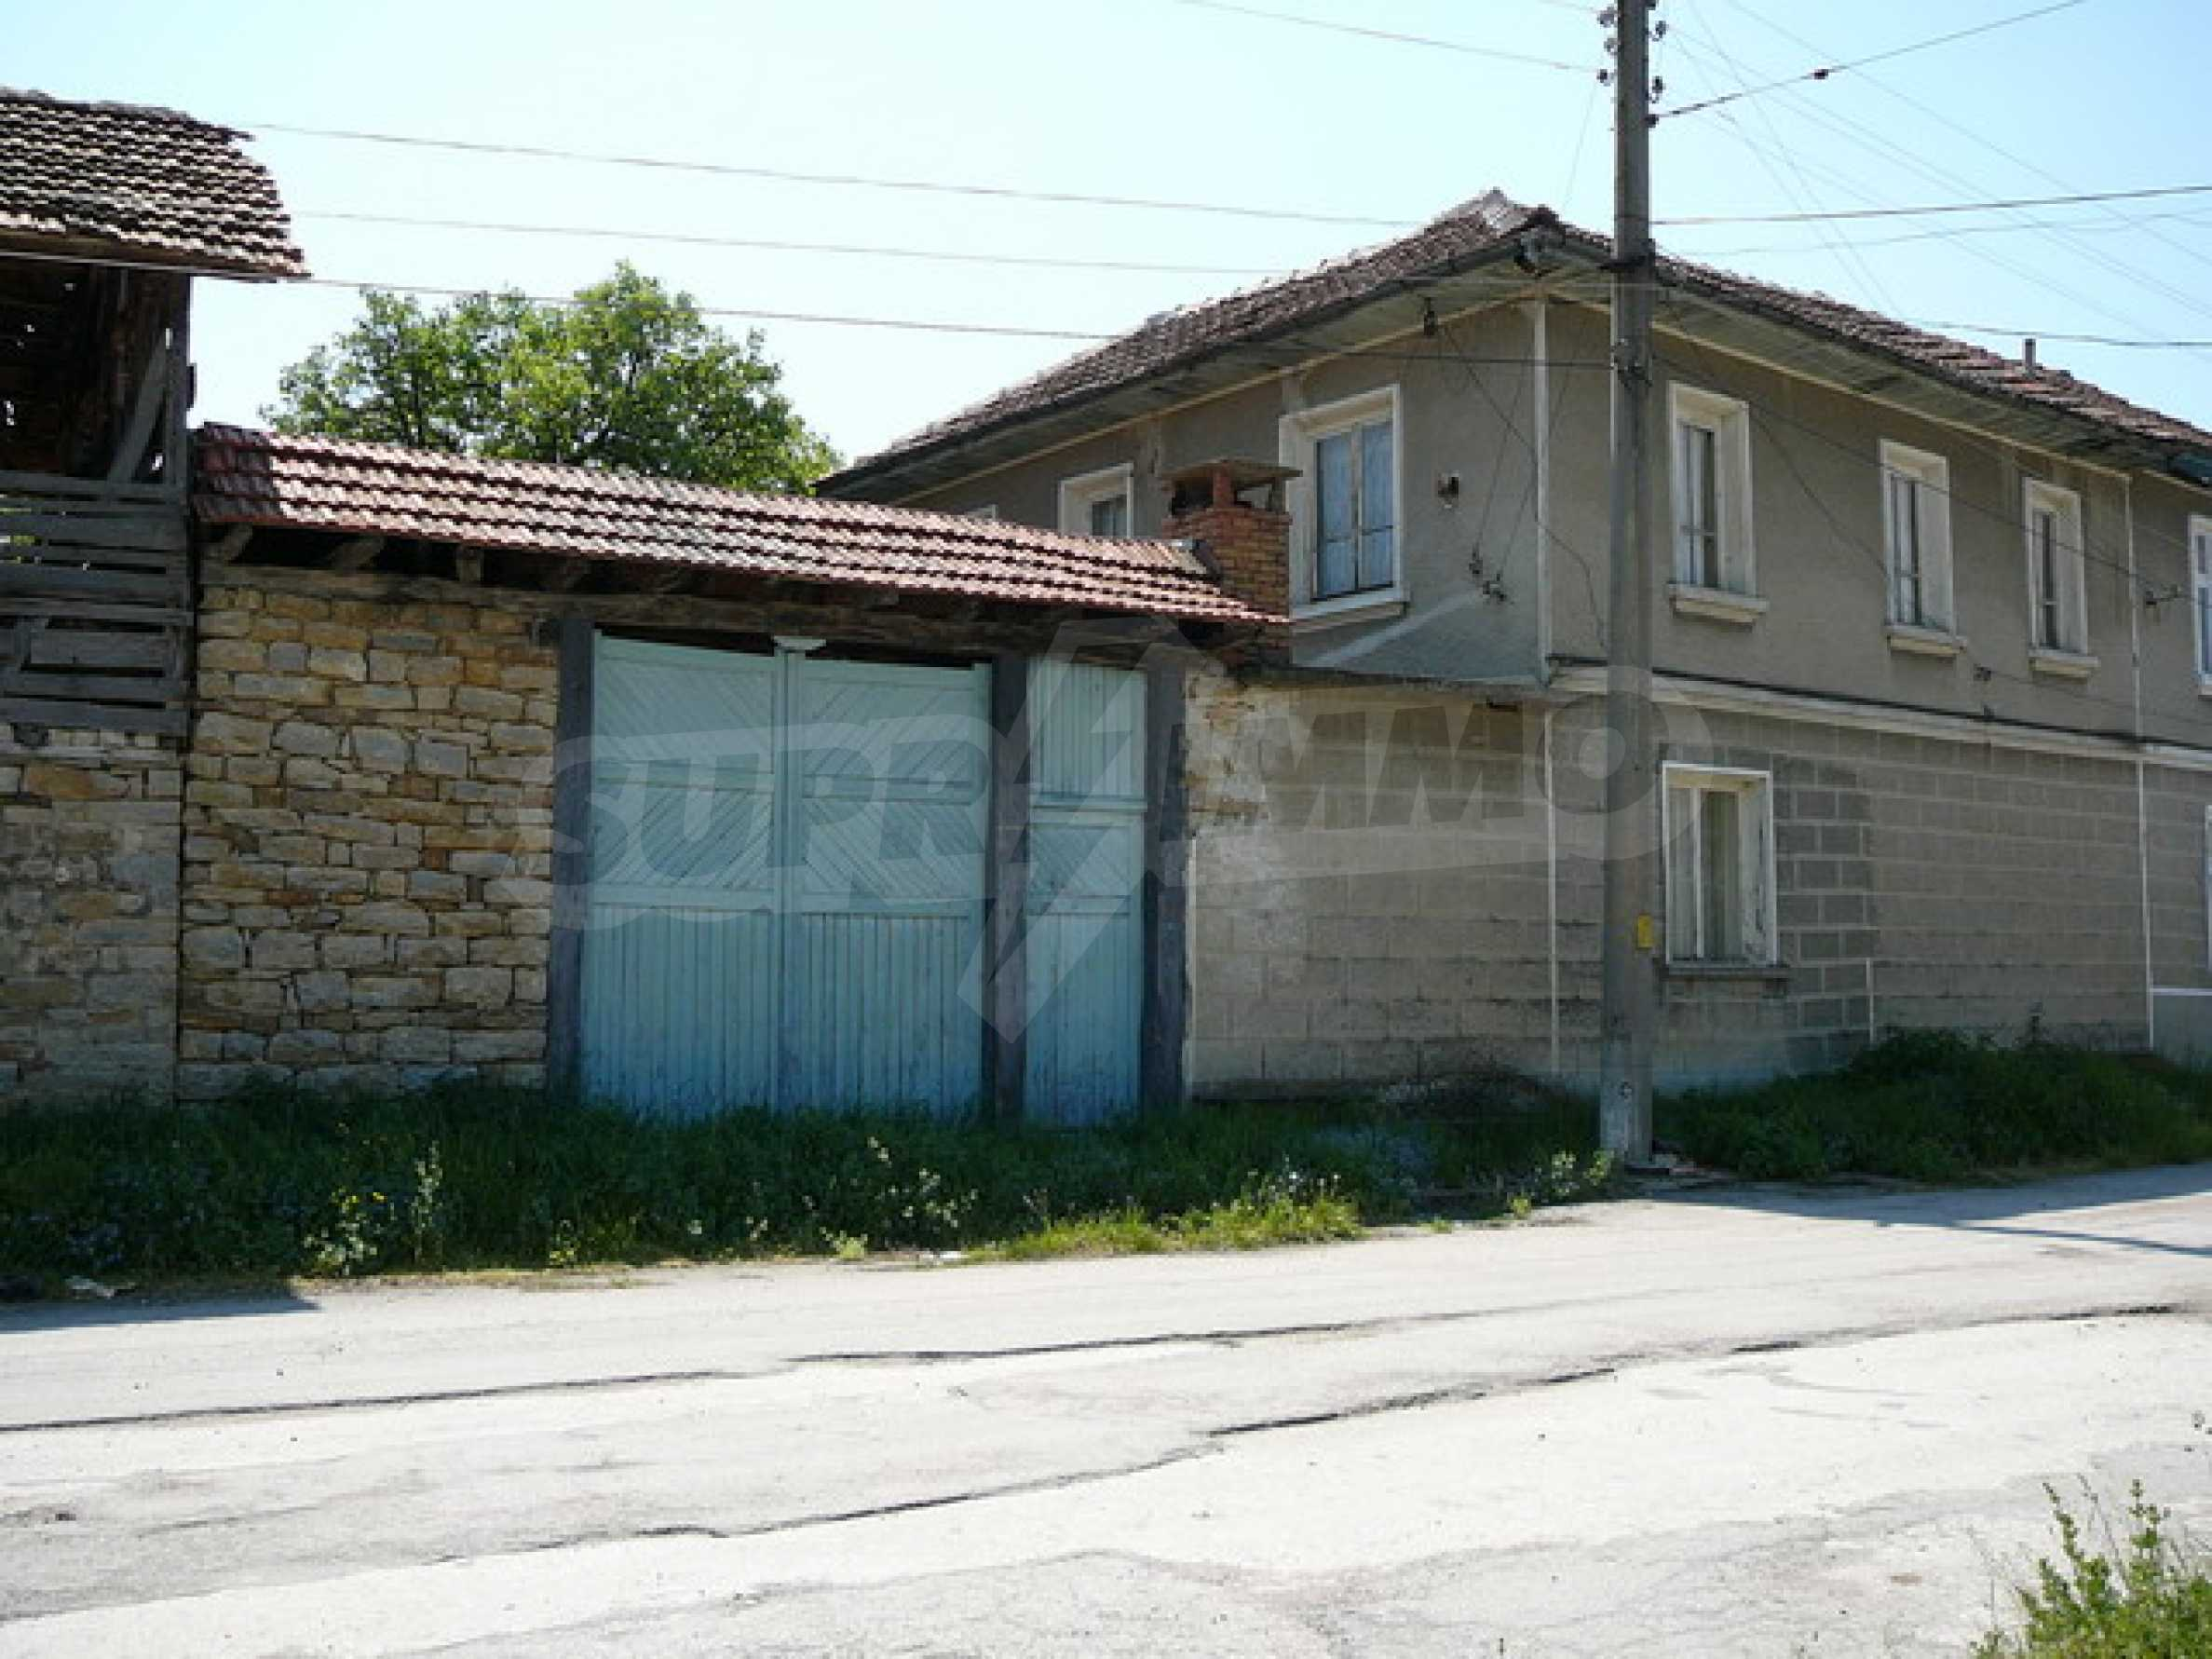 House for sale in a village close to Veliko Tarnovo 3